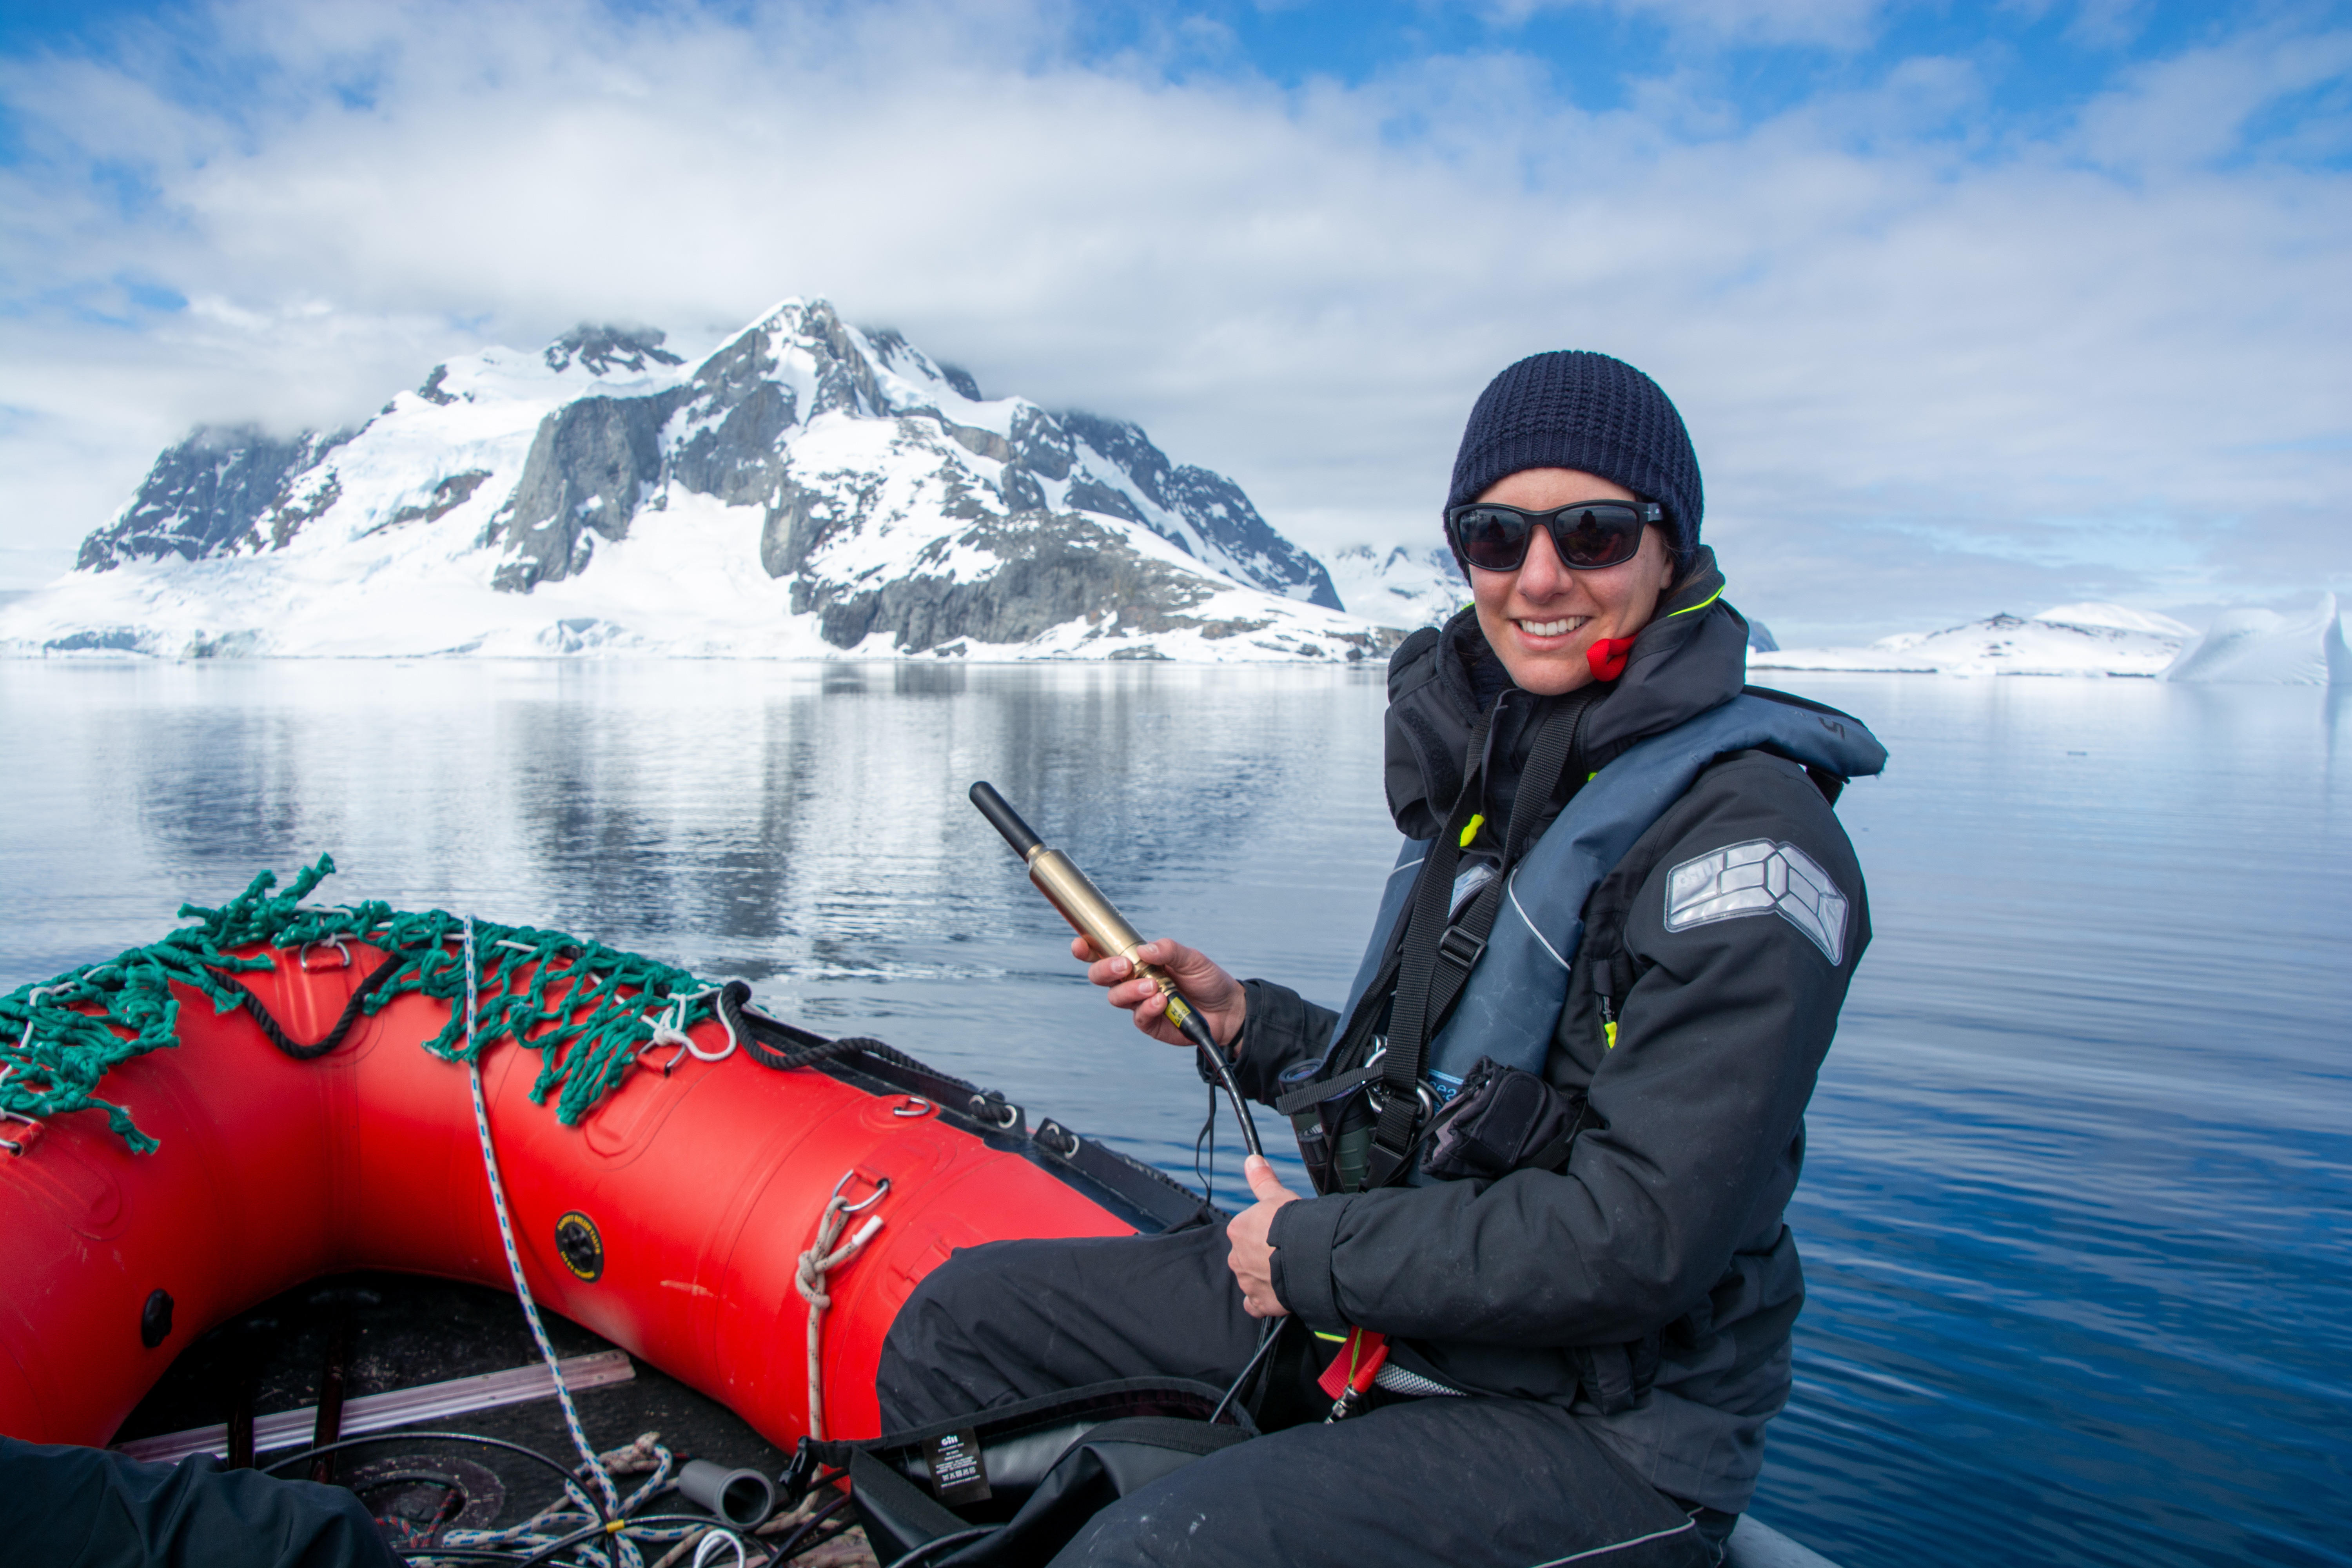 Helen on the dinghy in the Southern Ocean. She holds a hydrophone in her hand. Photo: Caesar Schinas.